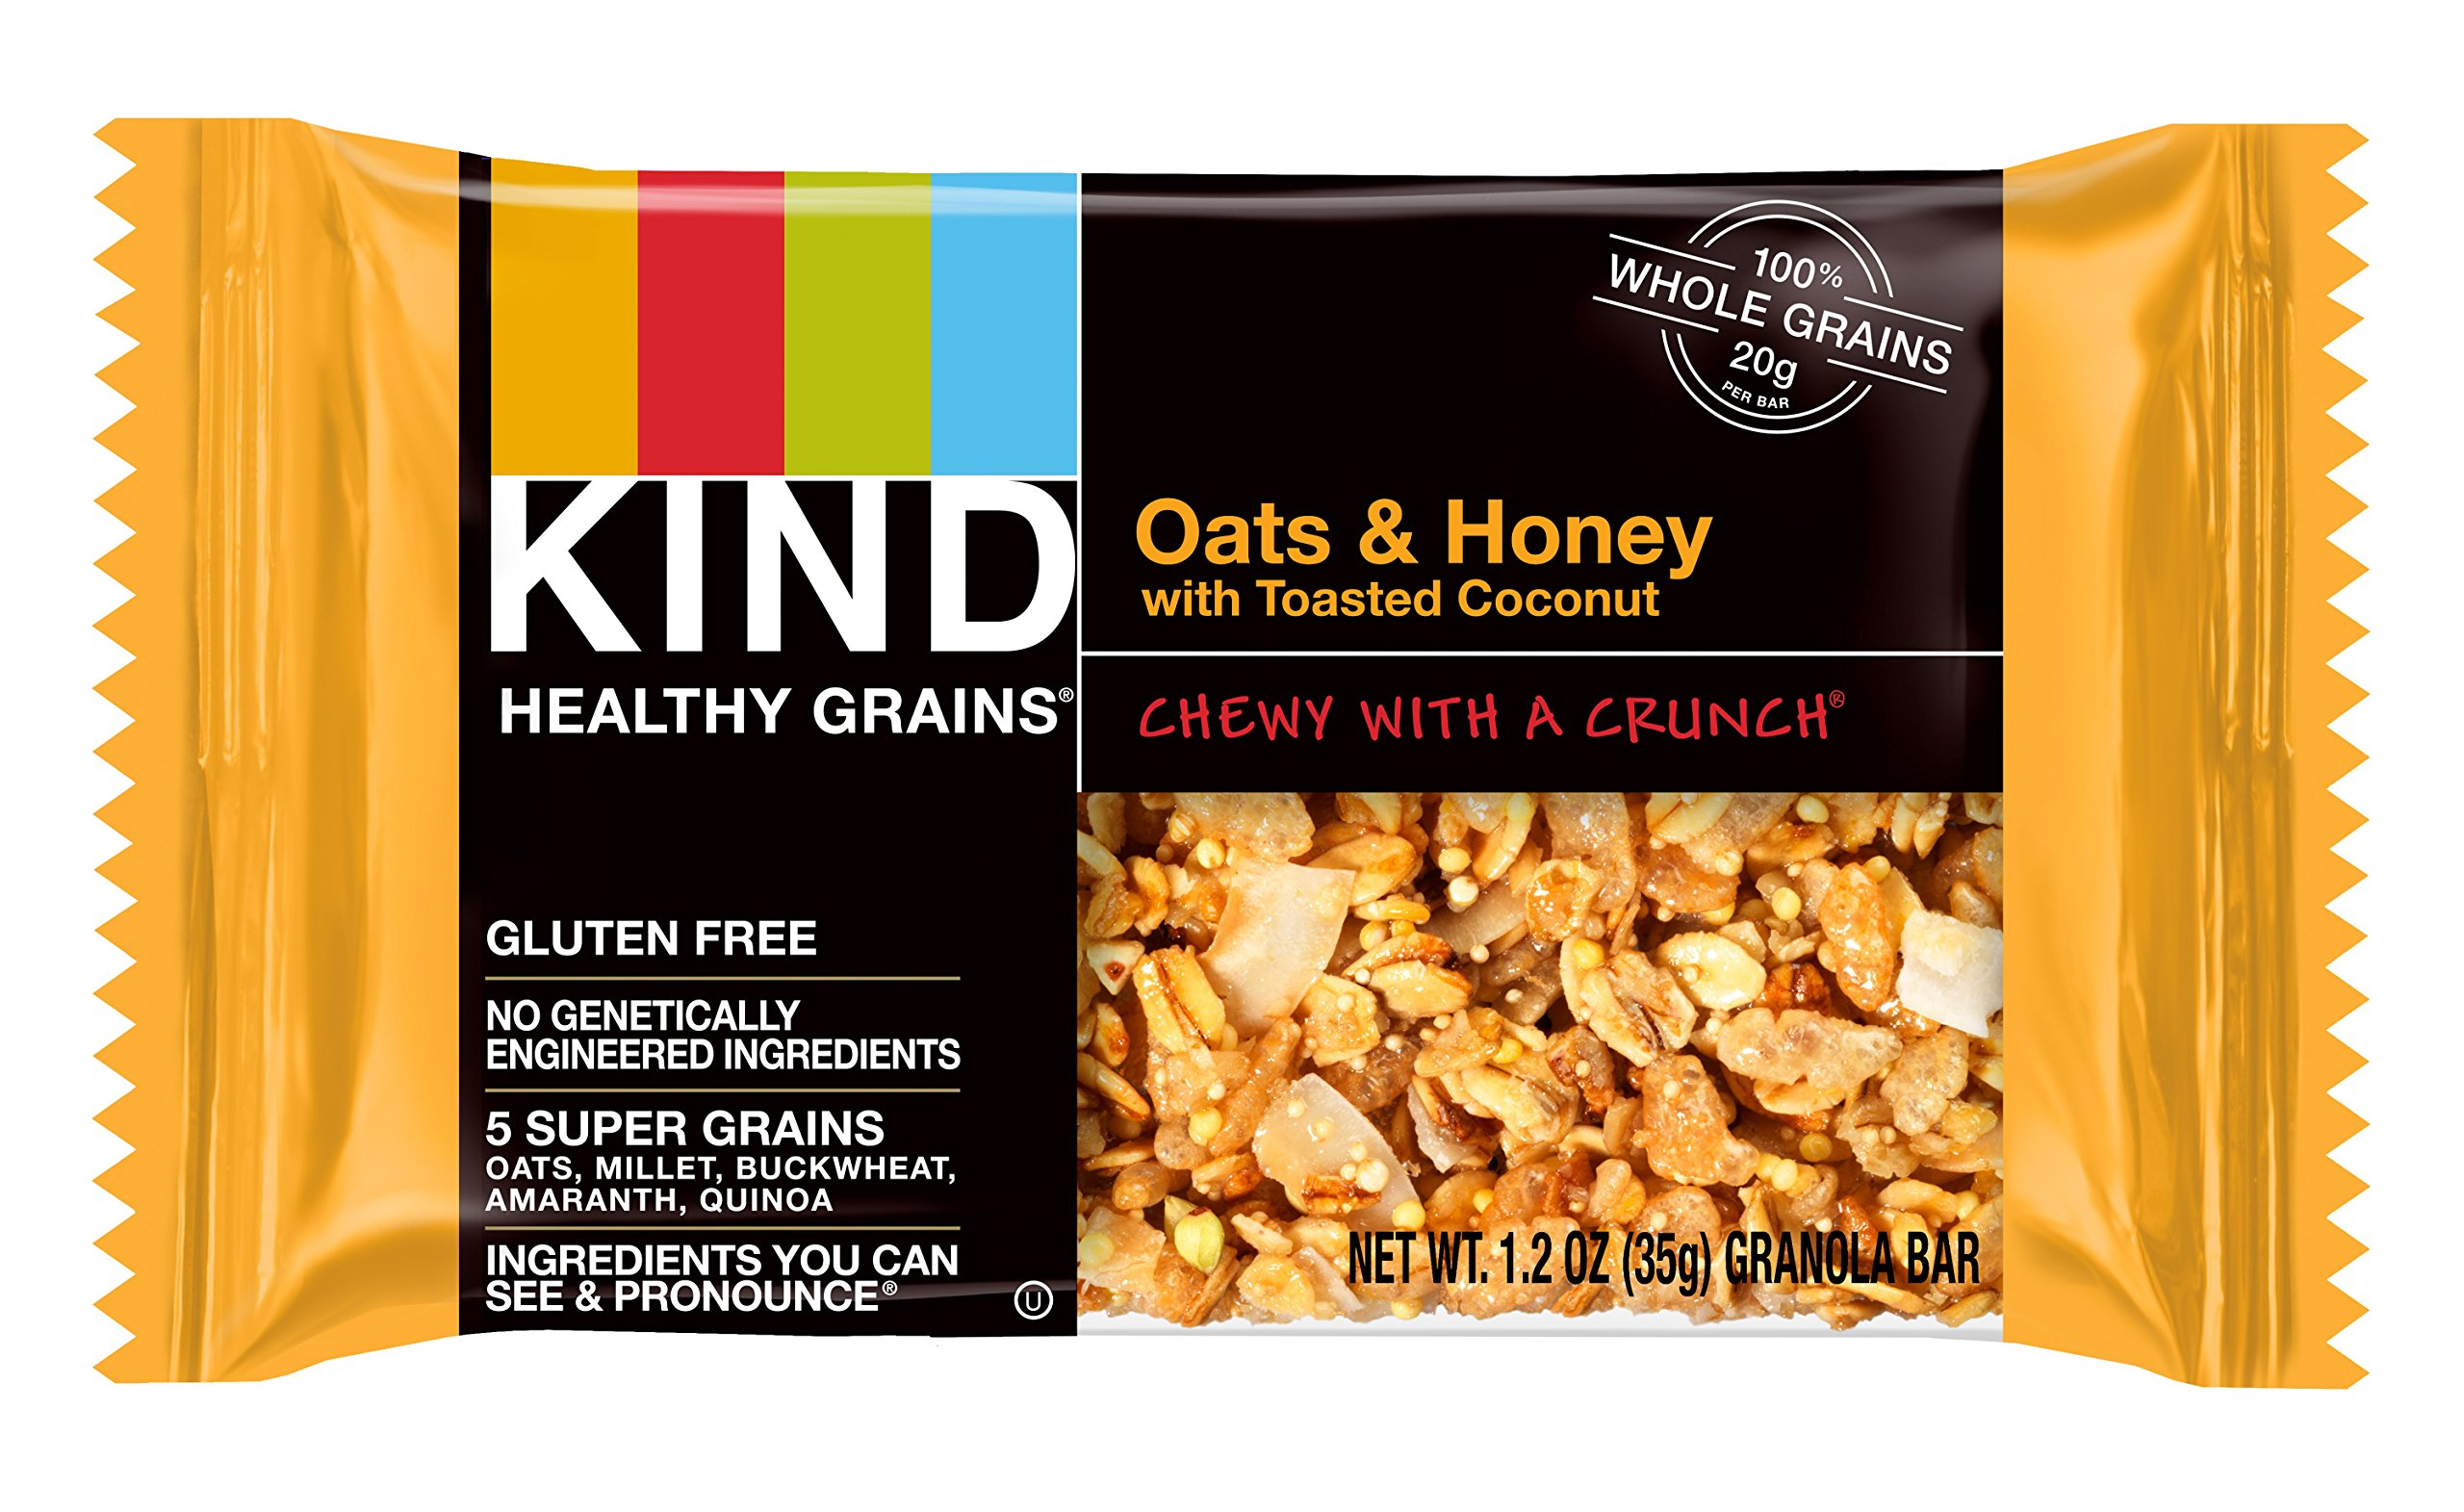 KIND Healthy Grains Bars, Oats & Honey with Toasted Coconut, Non GMO, Gluten Free, 1.2oz Sample